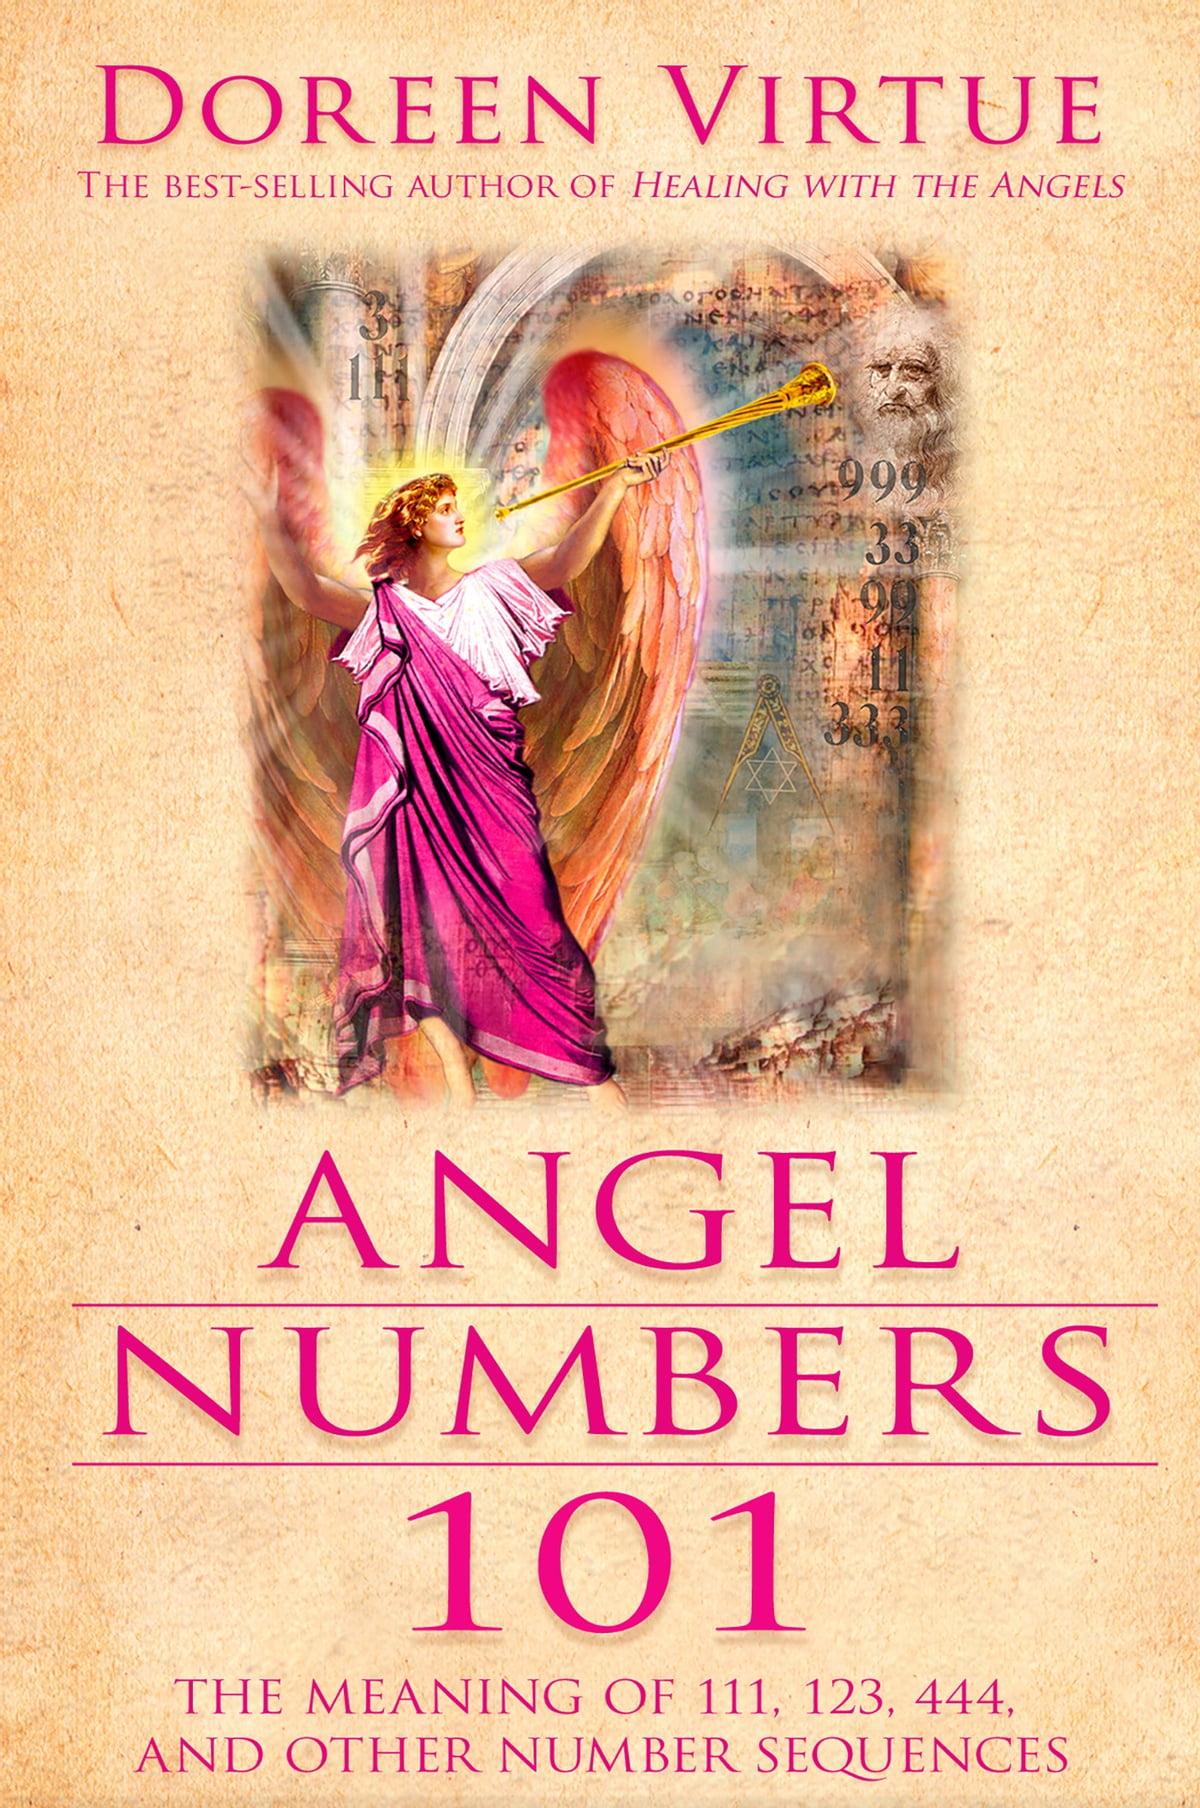 Angel Numbers 101 eBook by Doreen Virtue - 9781401922252